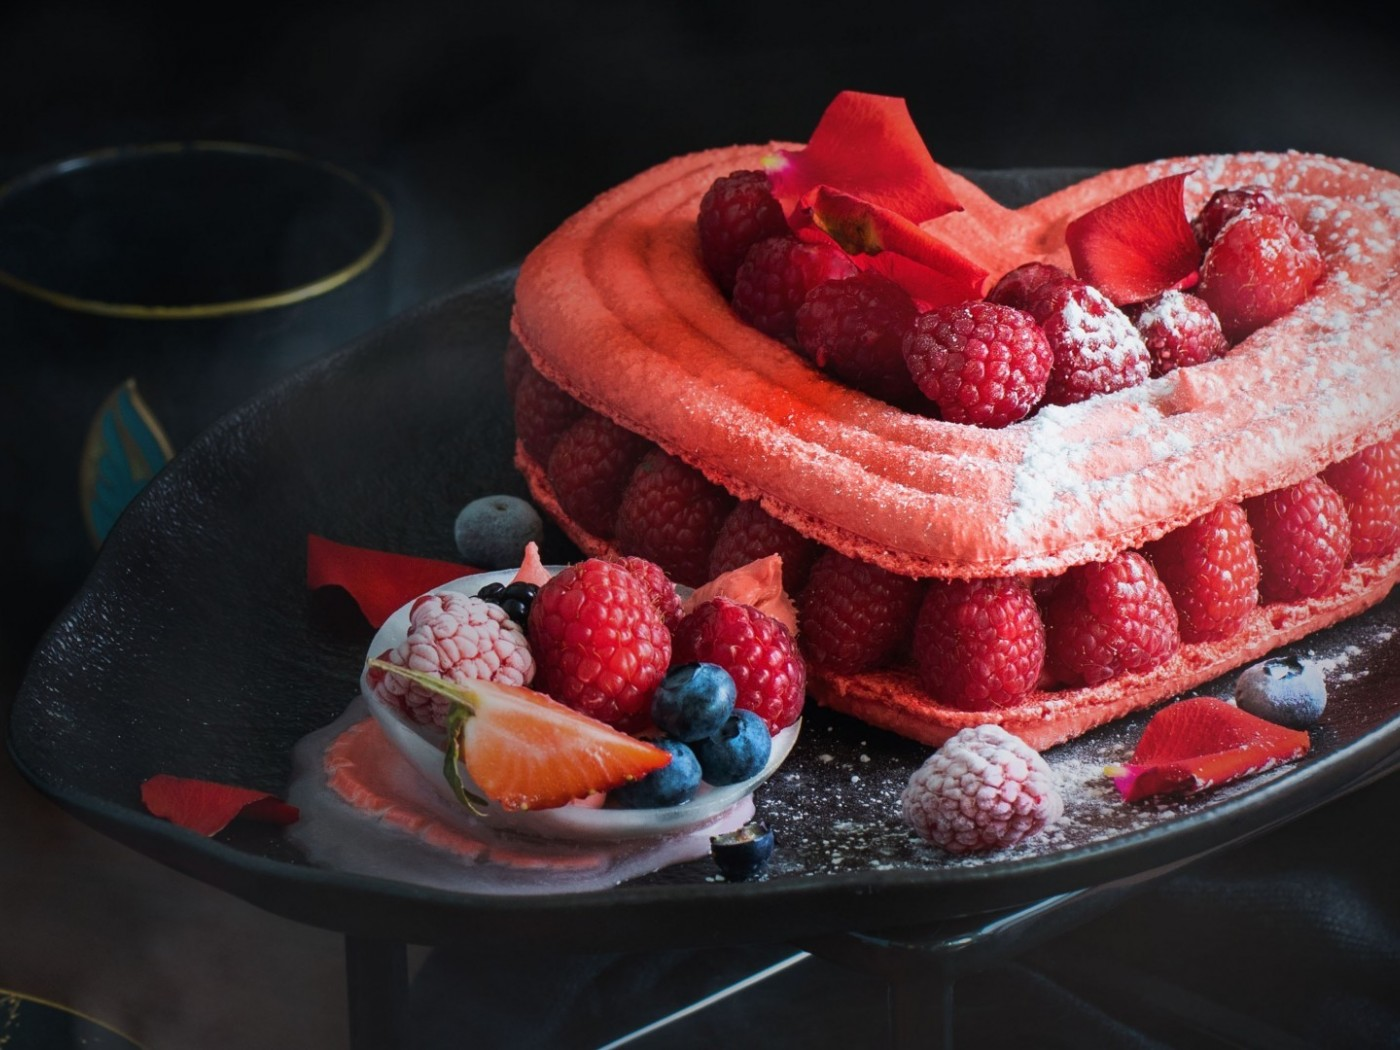 Raspberry cake HD Wallpaper